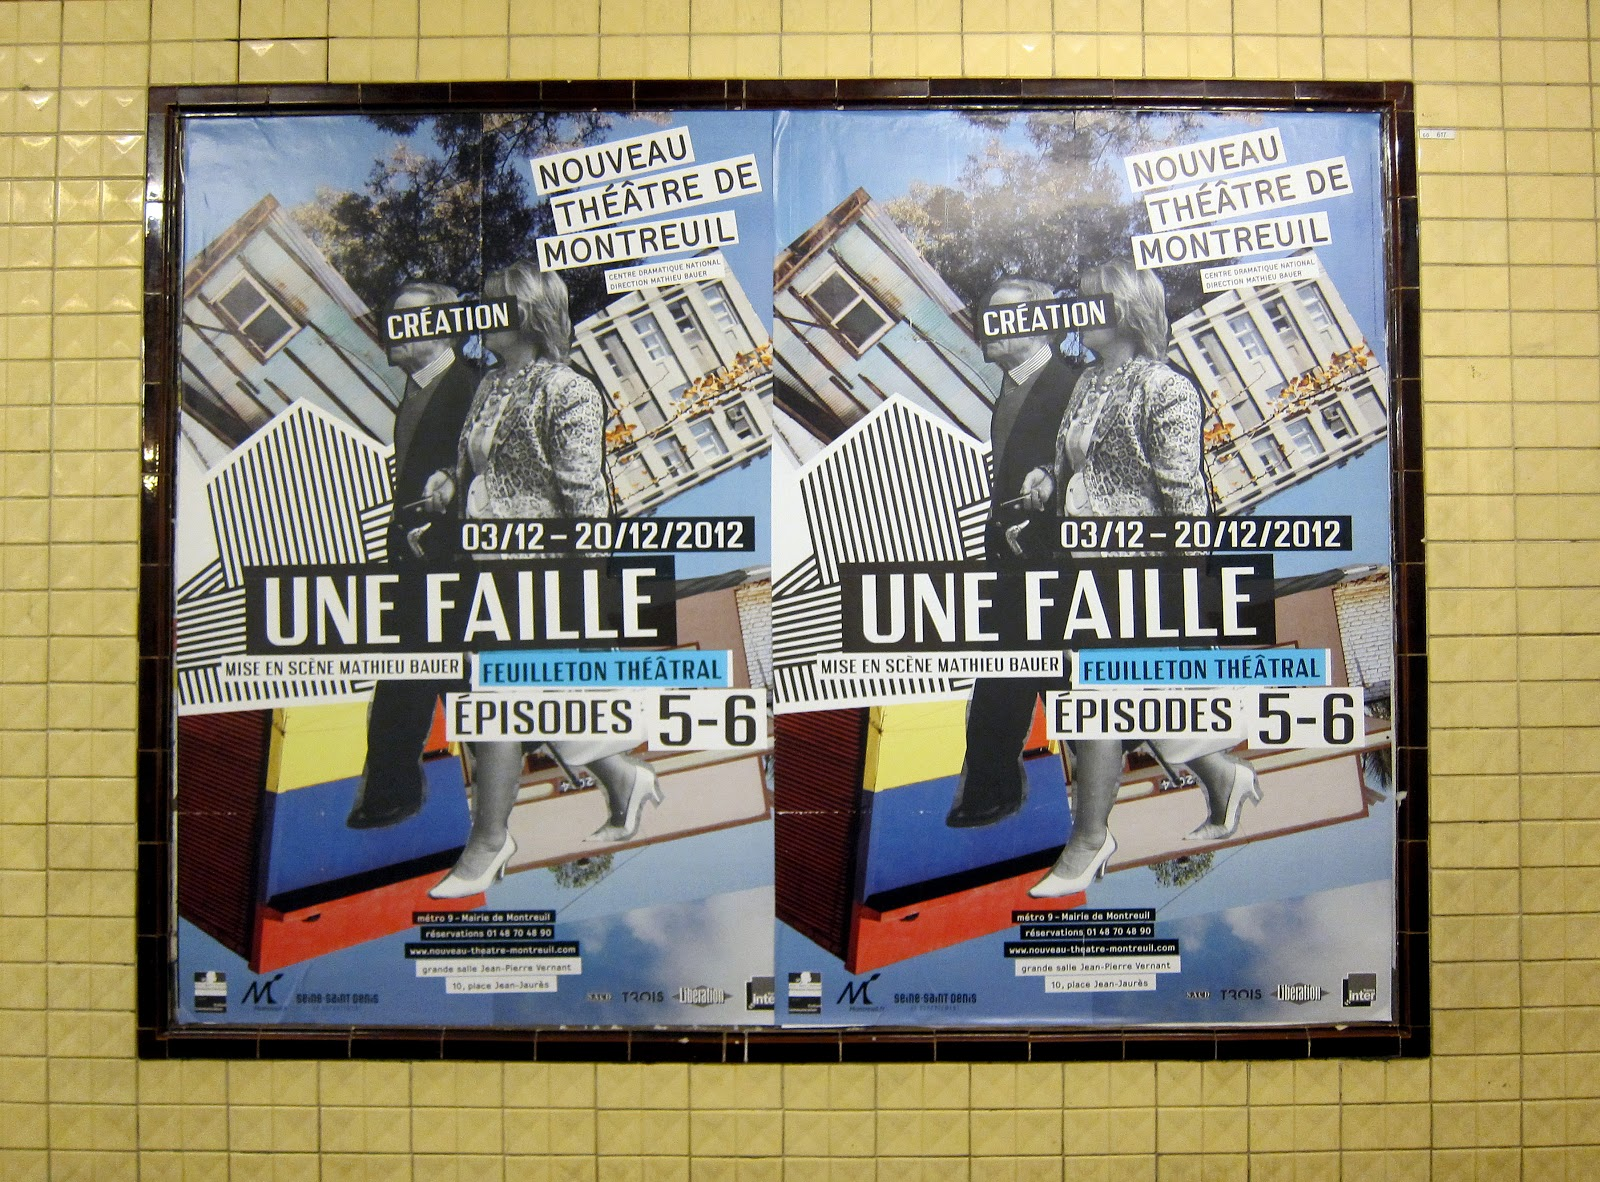 change is good: Latest posters in Paris subway